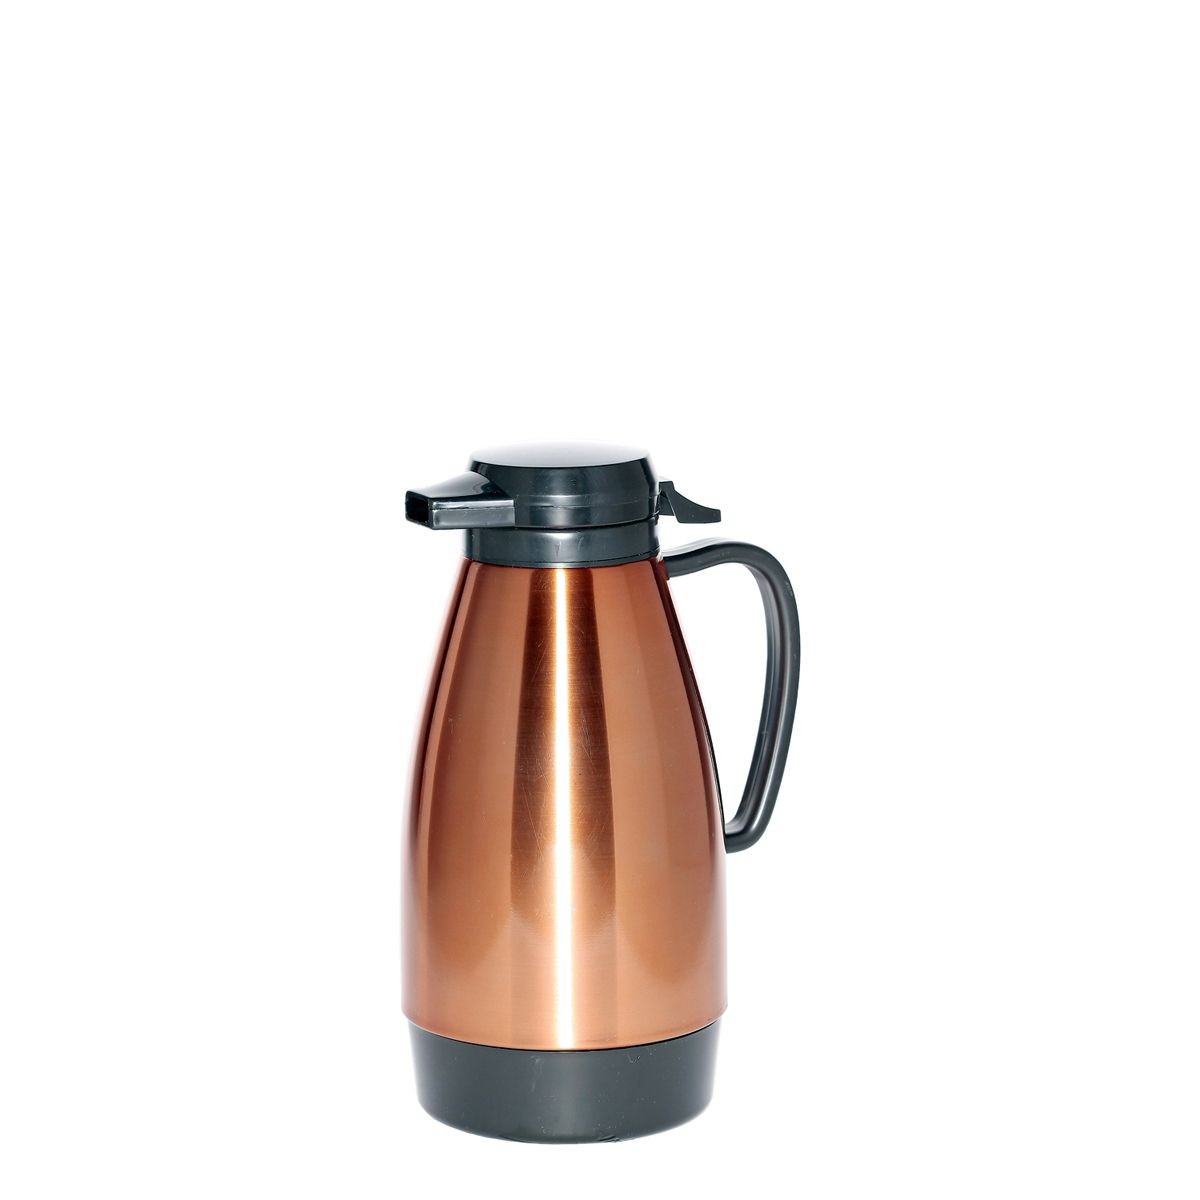 Service Ideas ML101MCPBL Coffee Server with Push Button Lid, Copper / Black, 1 Liter